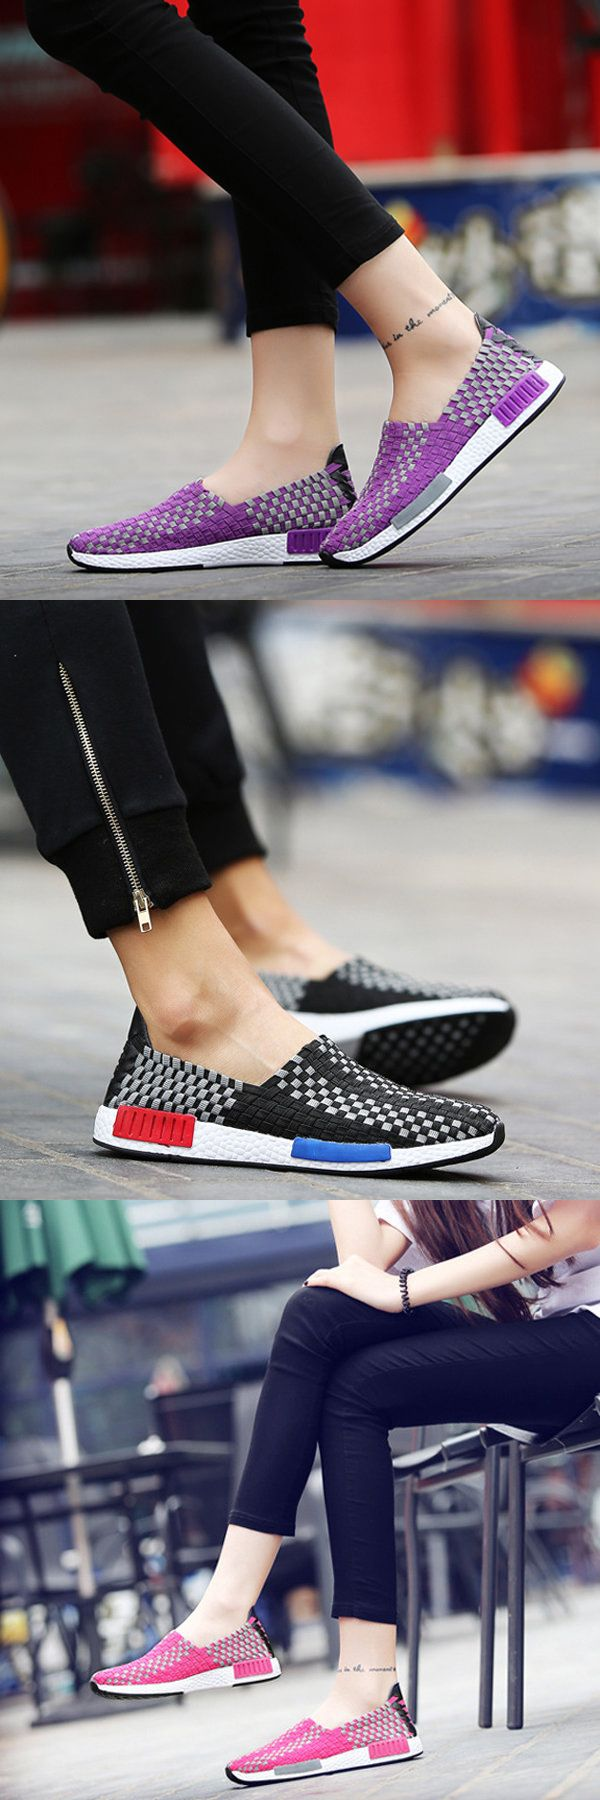 $21.94   Big Size Color Match Slip On Sport Platform Casual Knitting Shoes